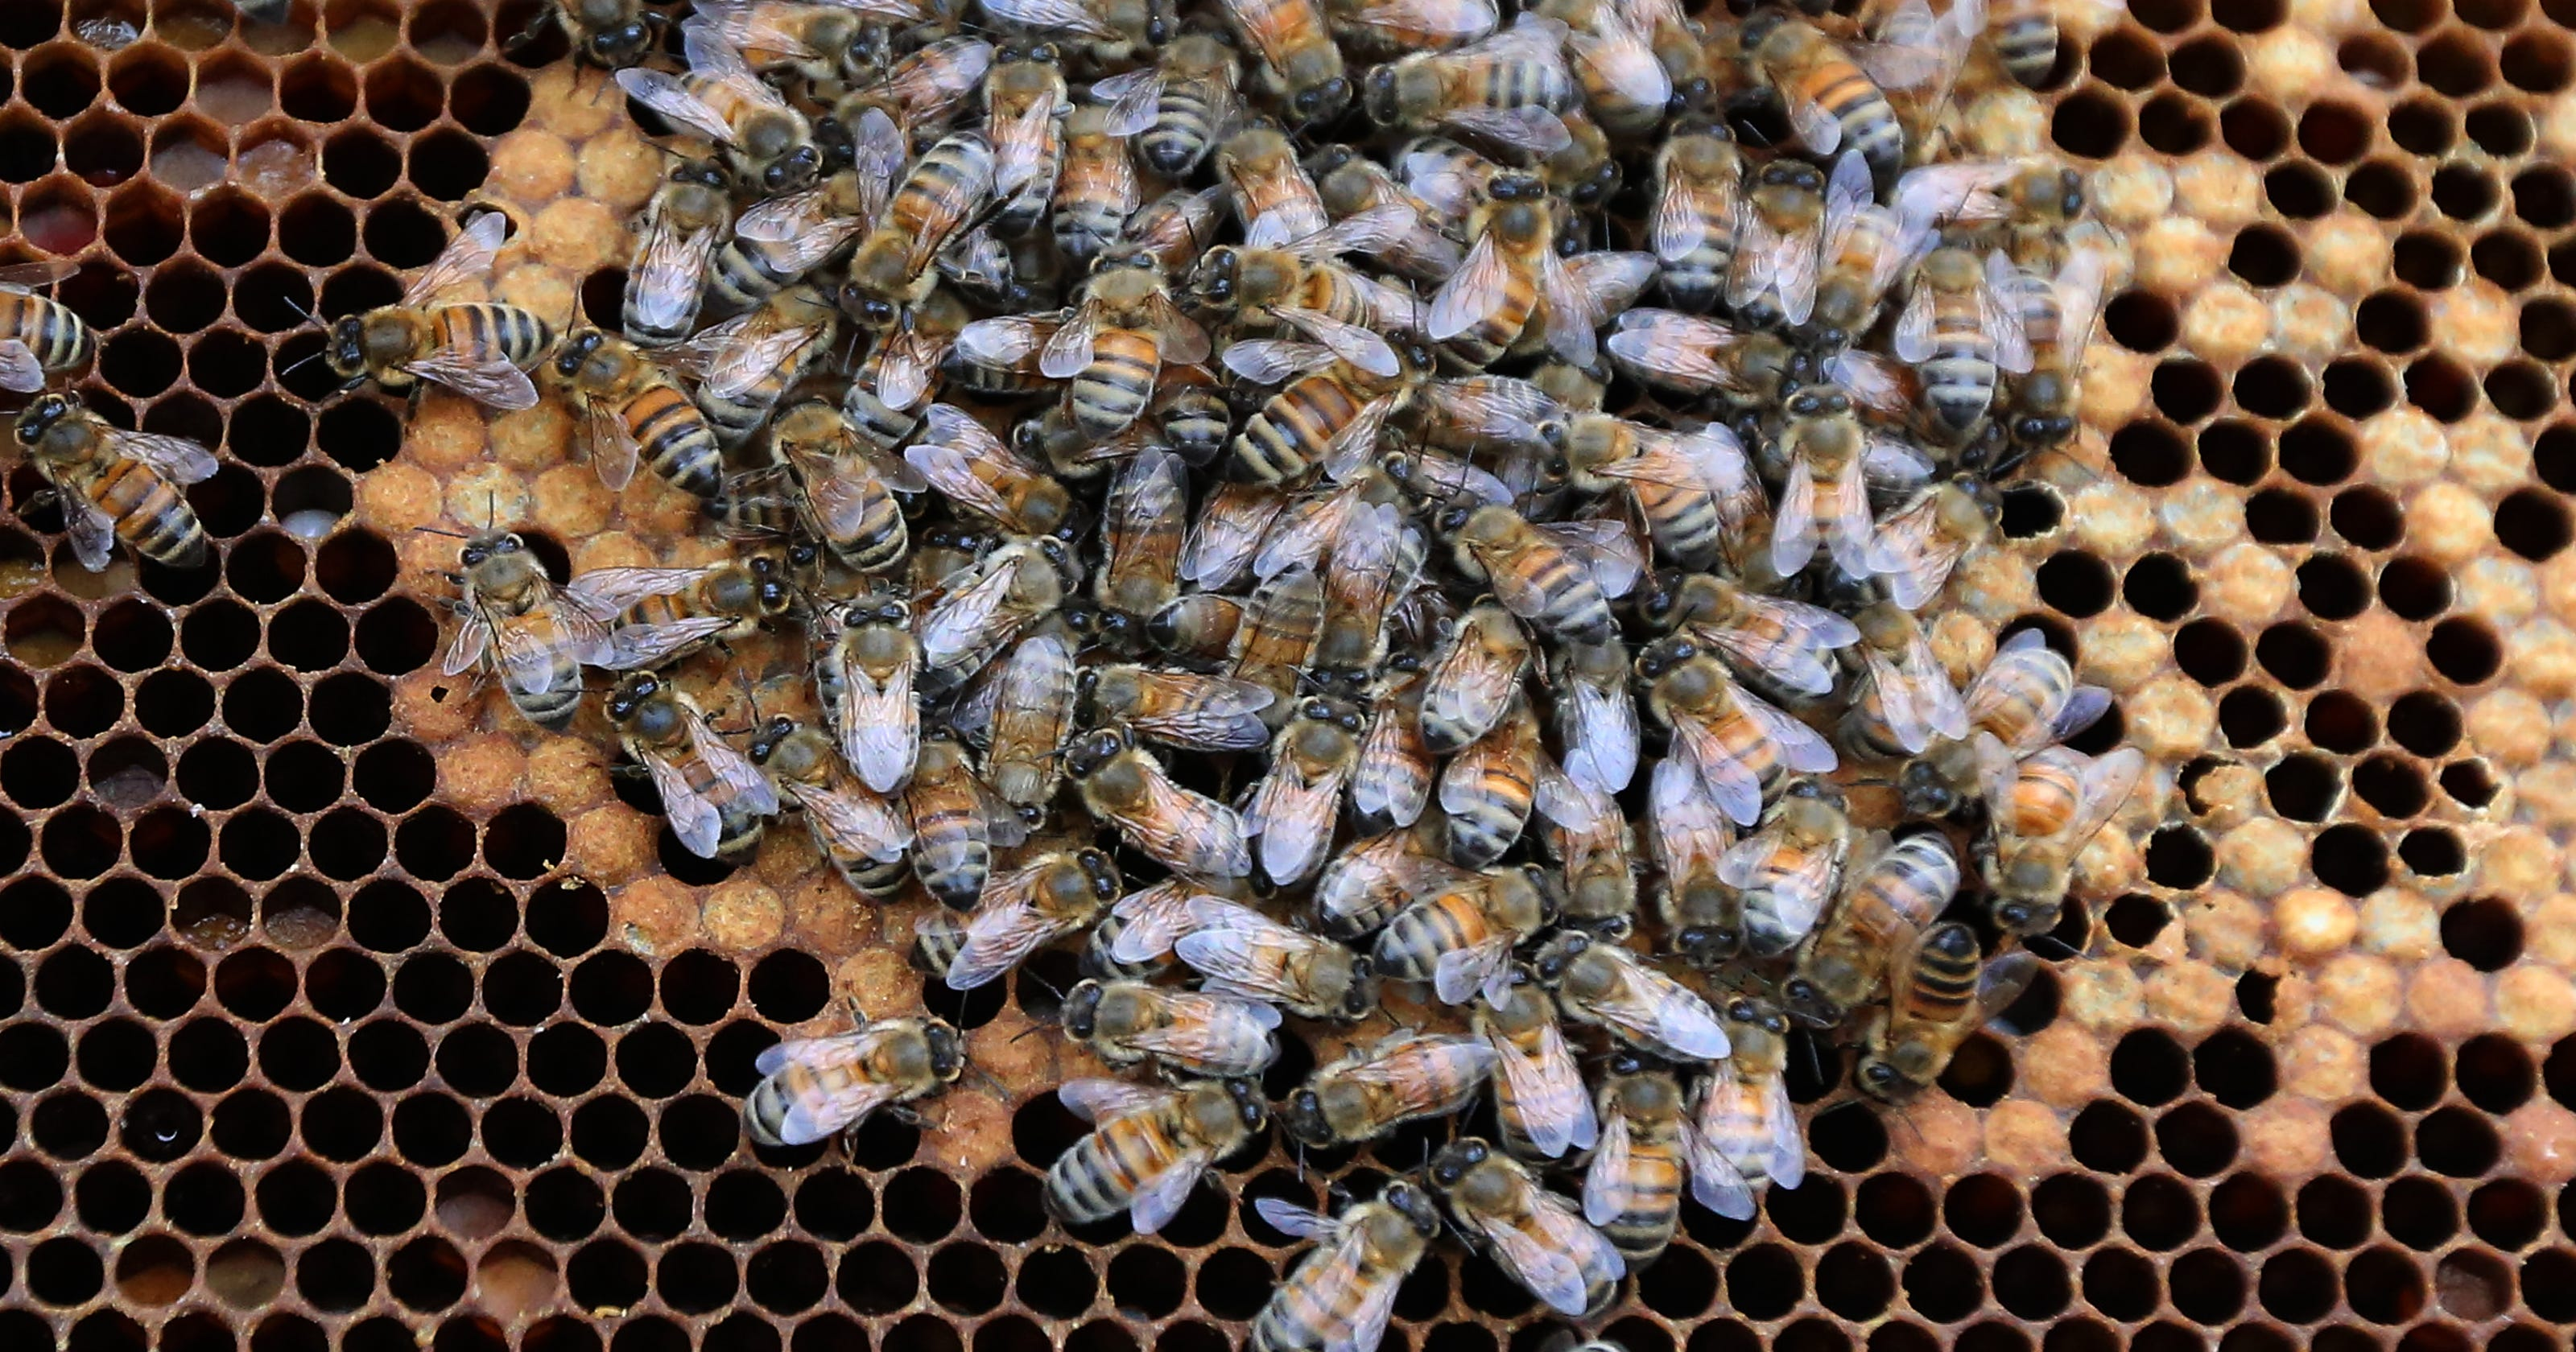 Urban Areas May Be Key To Growing Bee Populations